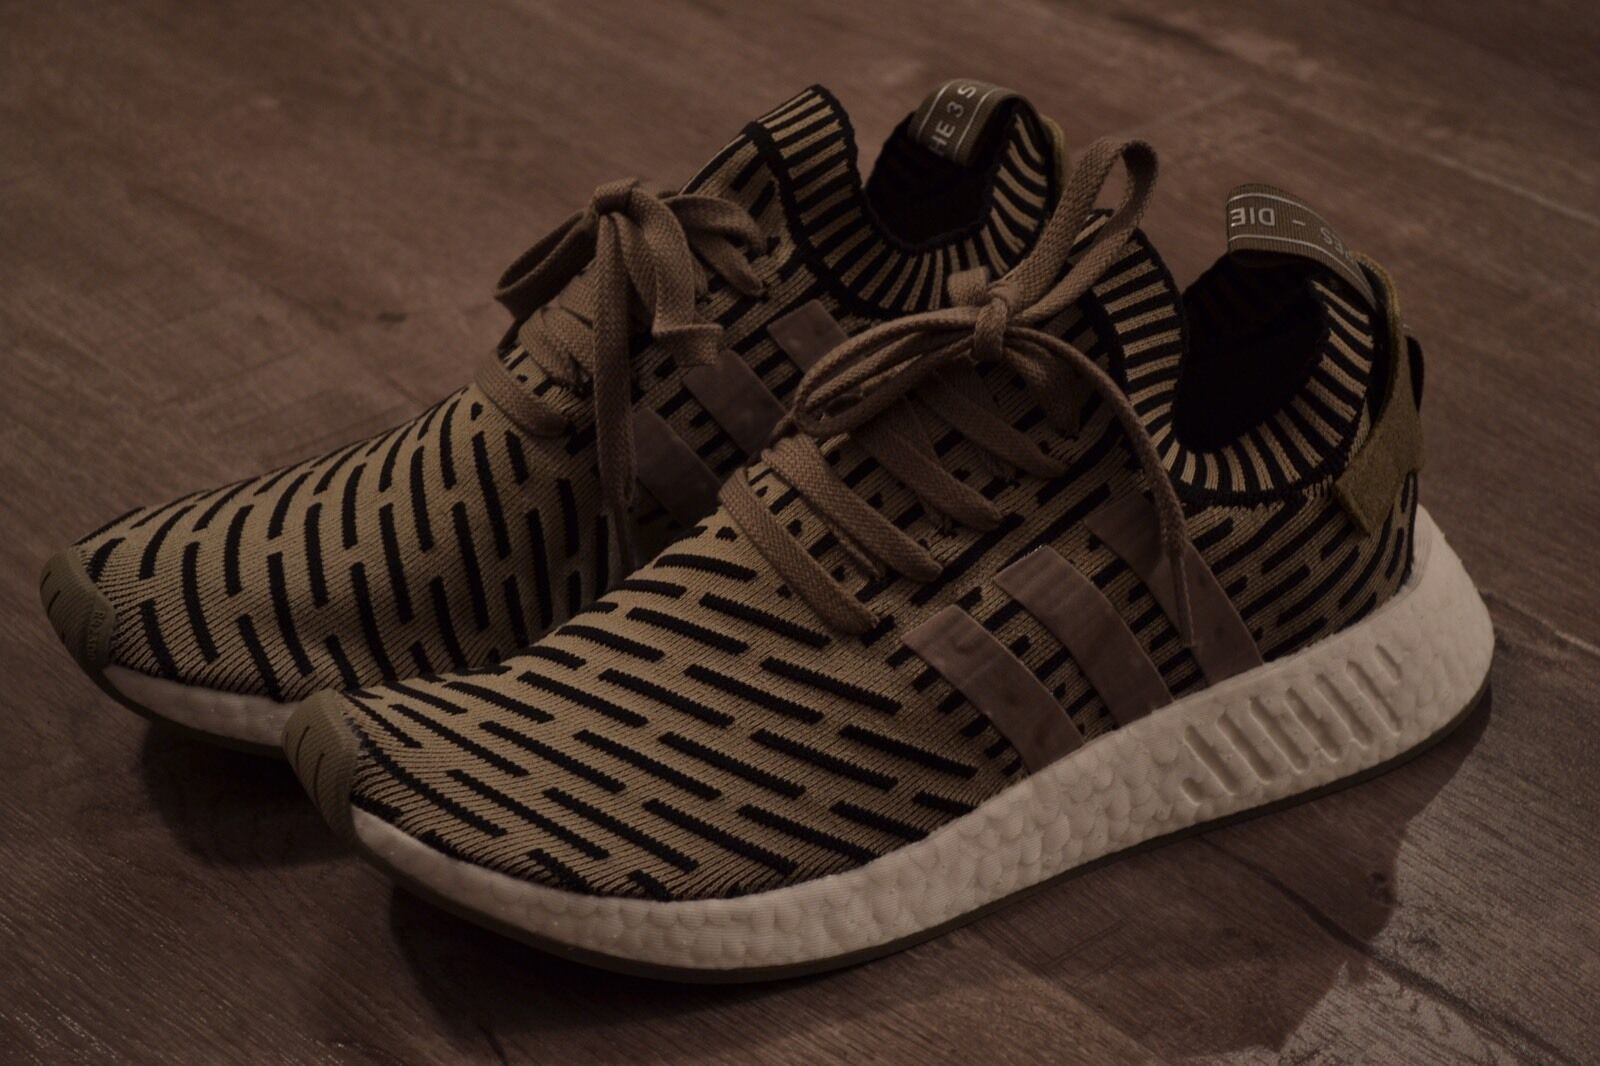 Adidas NMD R2 PK Trace Cargo Olive Green Primeknit FREE PRIORITY 2DAY! W RECEIPT